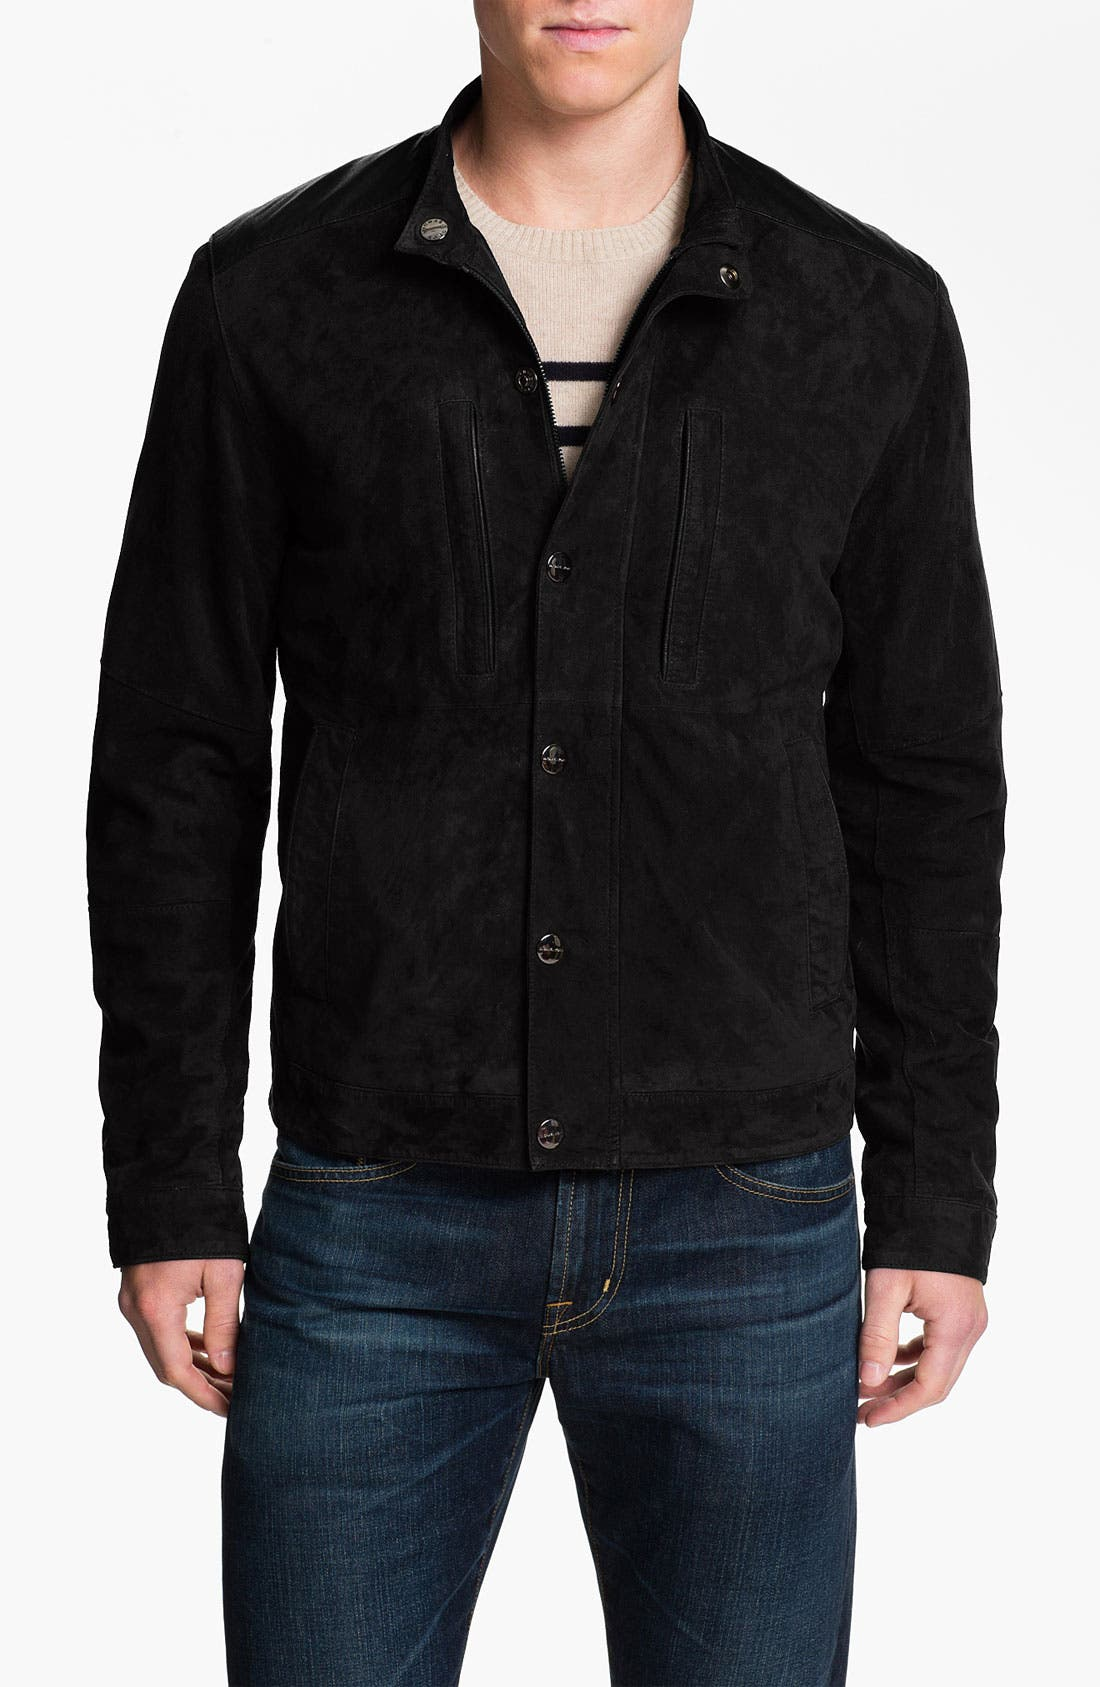 Alternate Image 1 Selected - Michael Kors Suede Racer Jacket